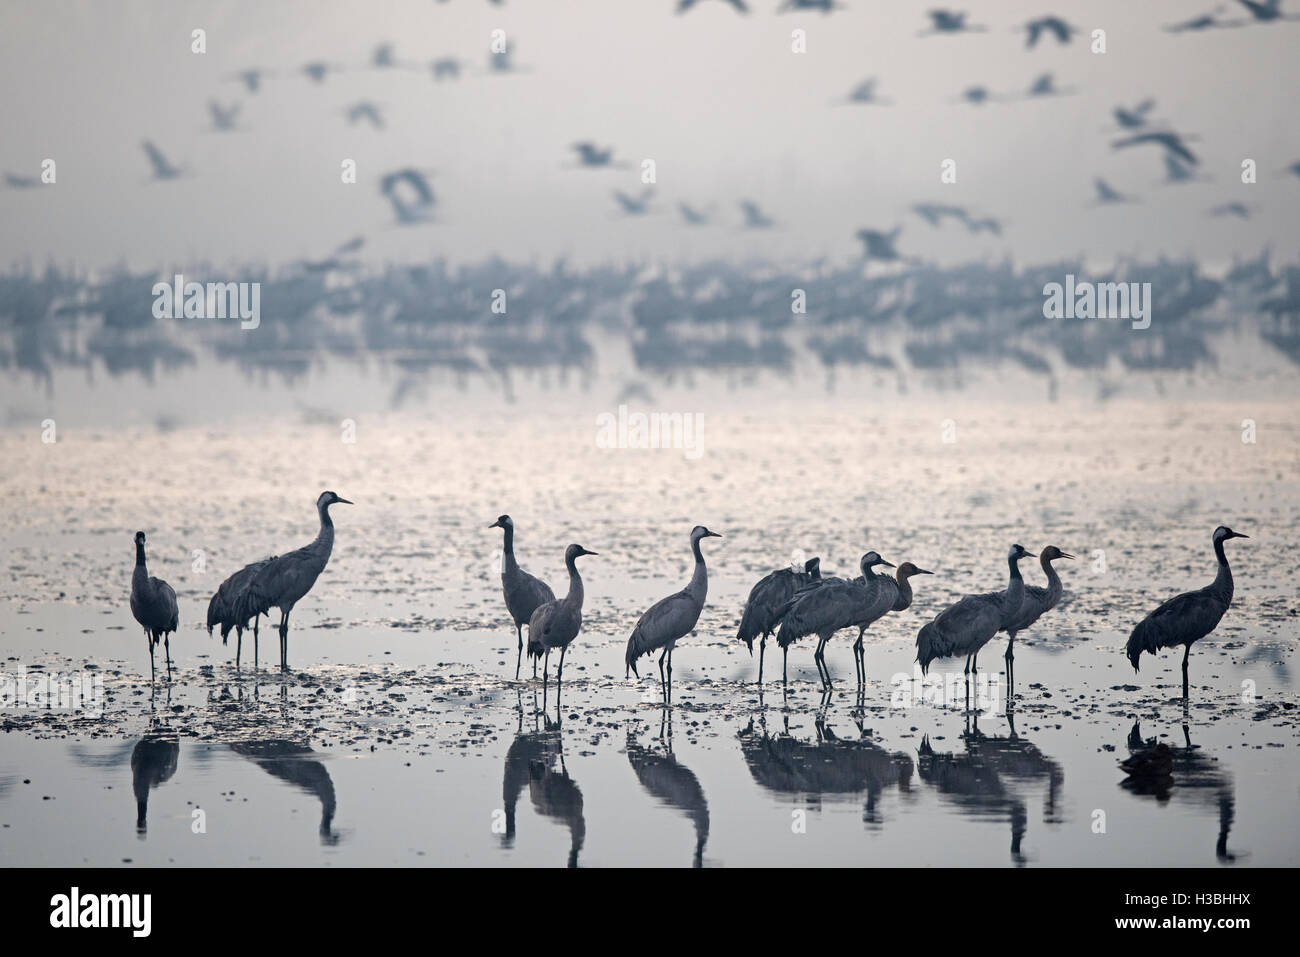 Common Cranes, at overnight roost at dawn, Grus grus, wintering at  the Hula Lake Park, known in Hebrew as Agamon Stock Photo